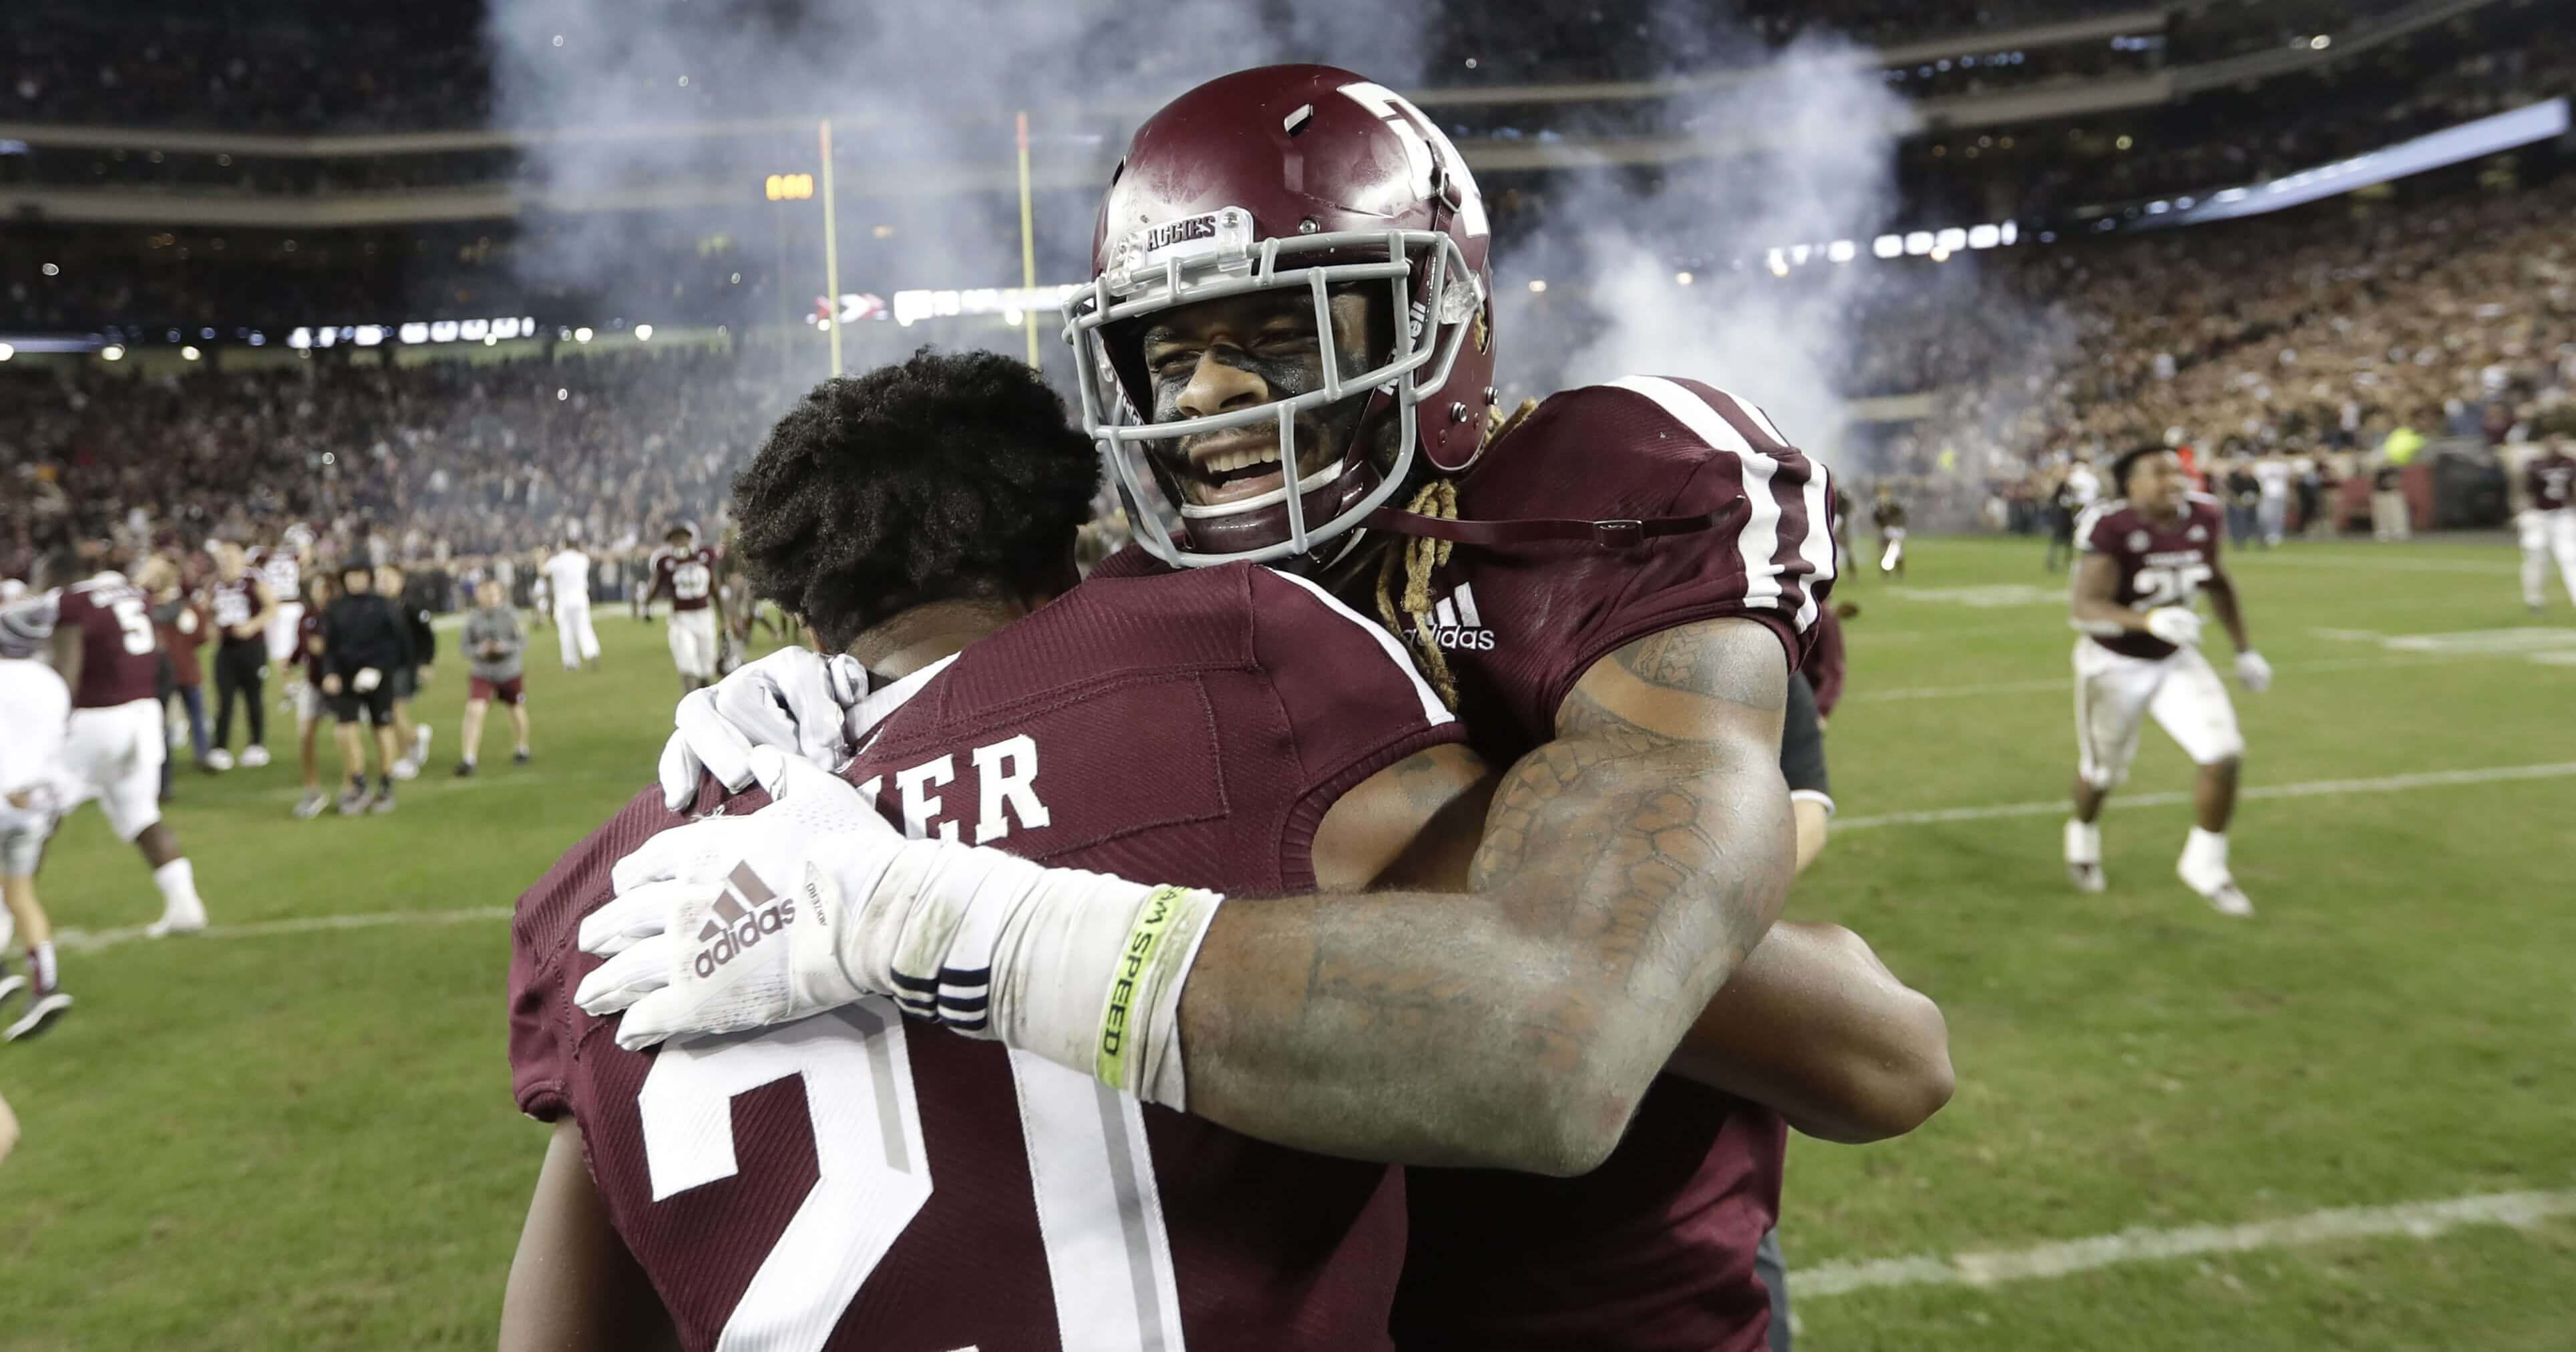 Texas A&M wide receiver Kendrick Rogers, right, celebrates with Charles Oliver after their 74-72 win in seven overtimes against LSU on Nov. 24 in College Station, Texas.